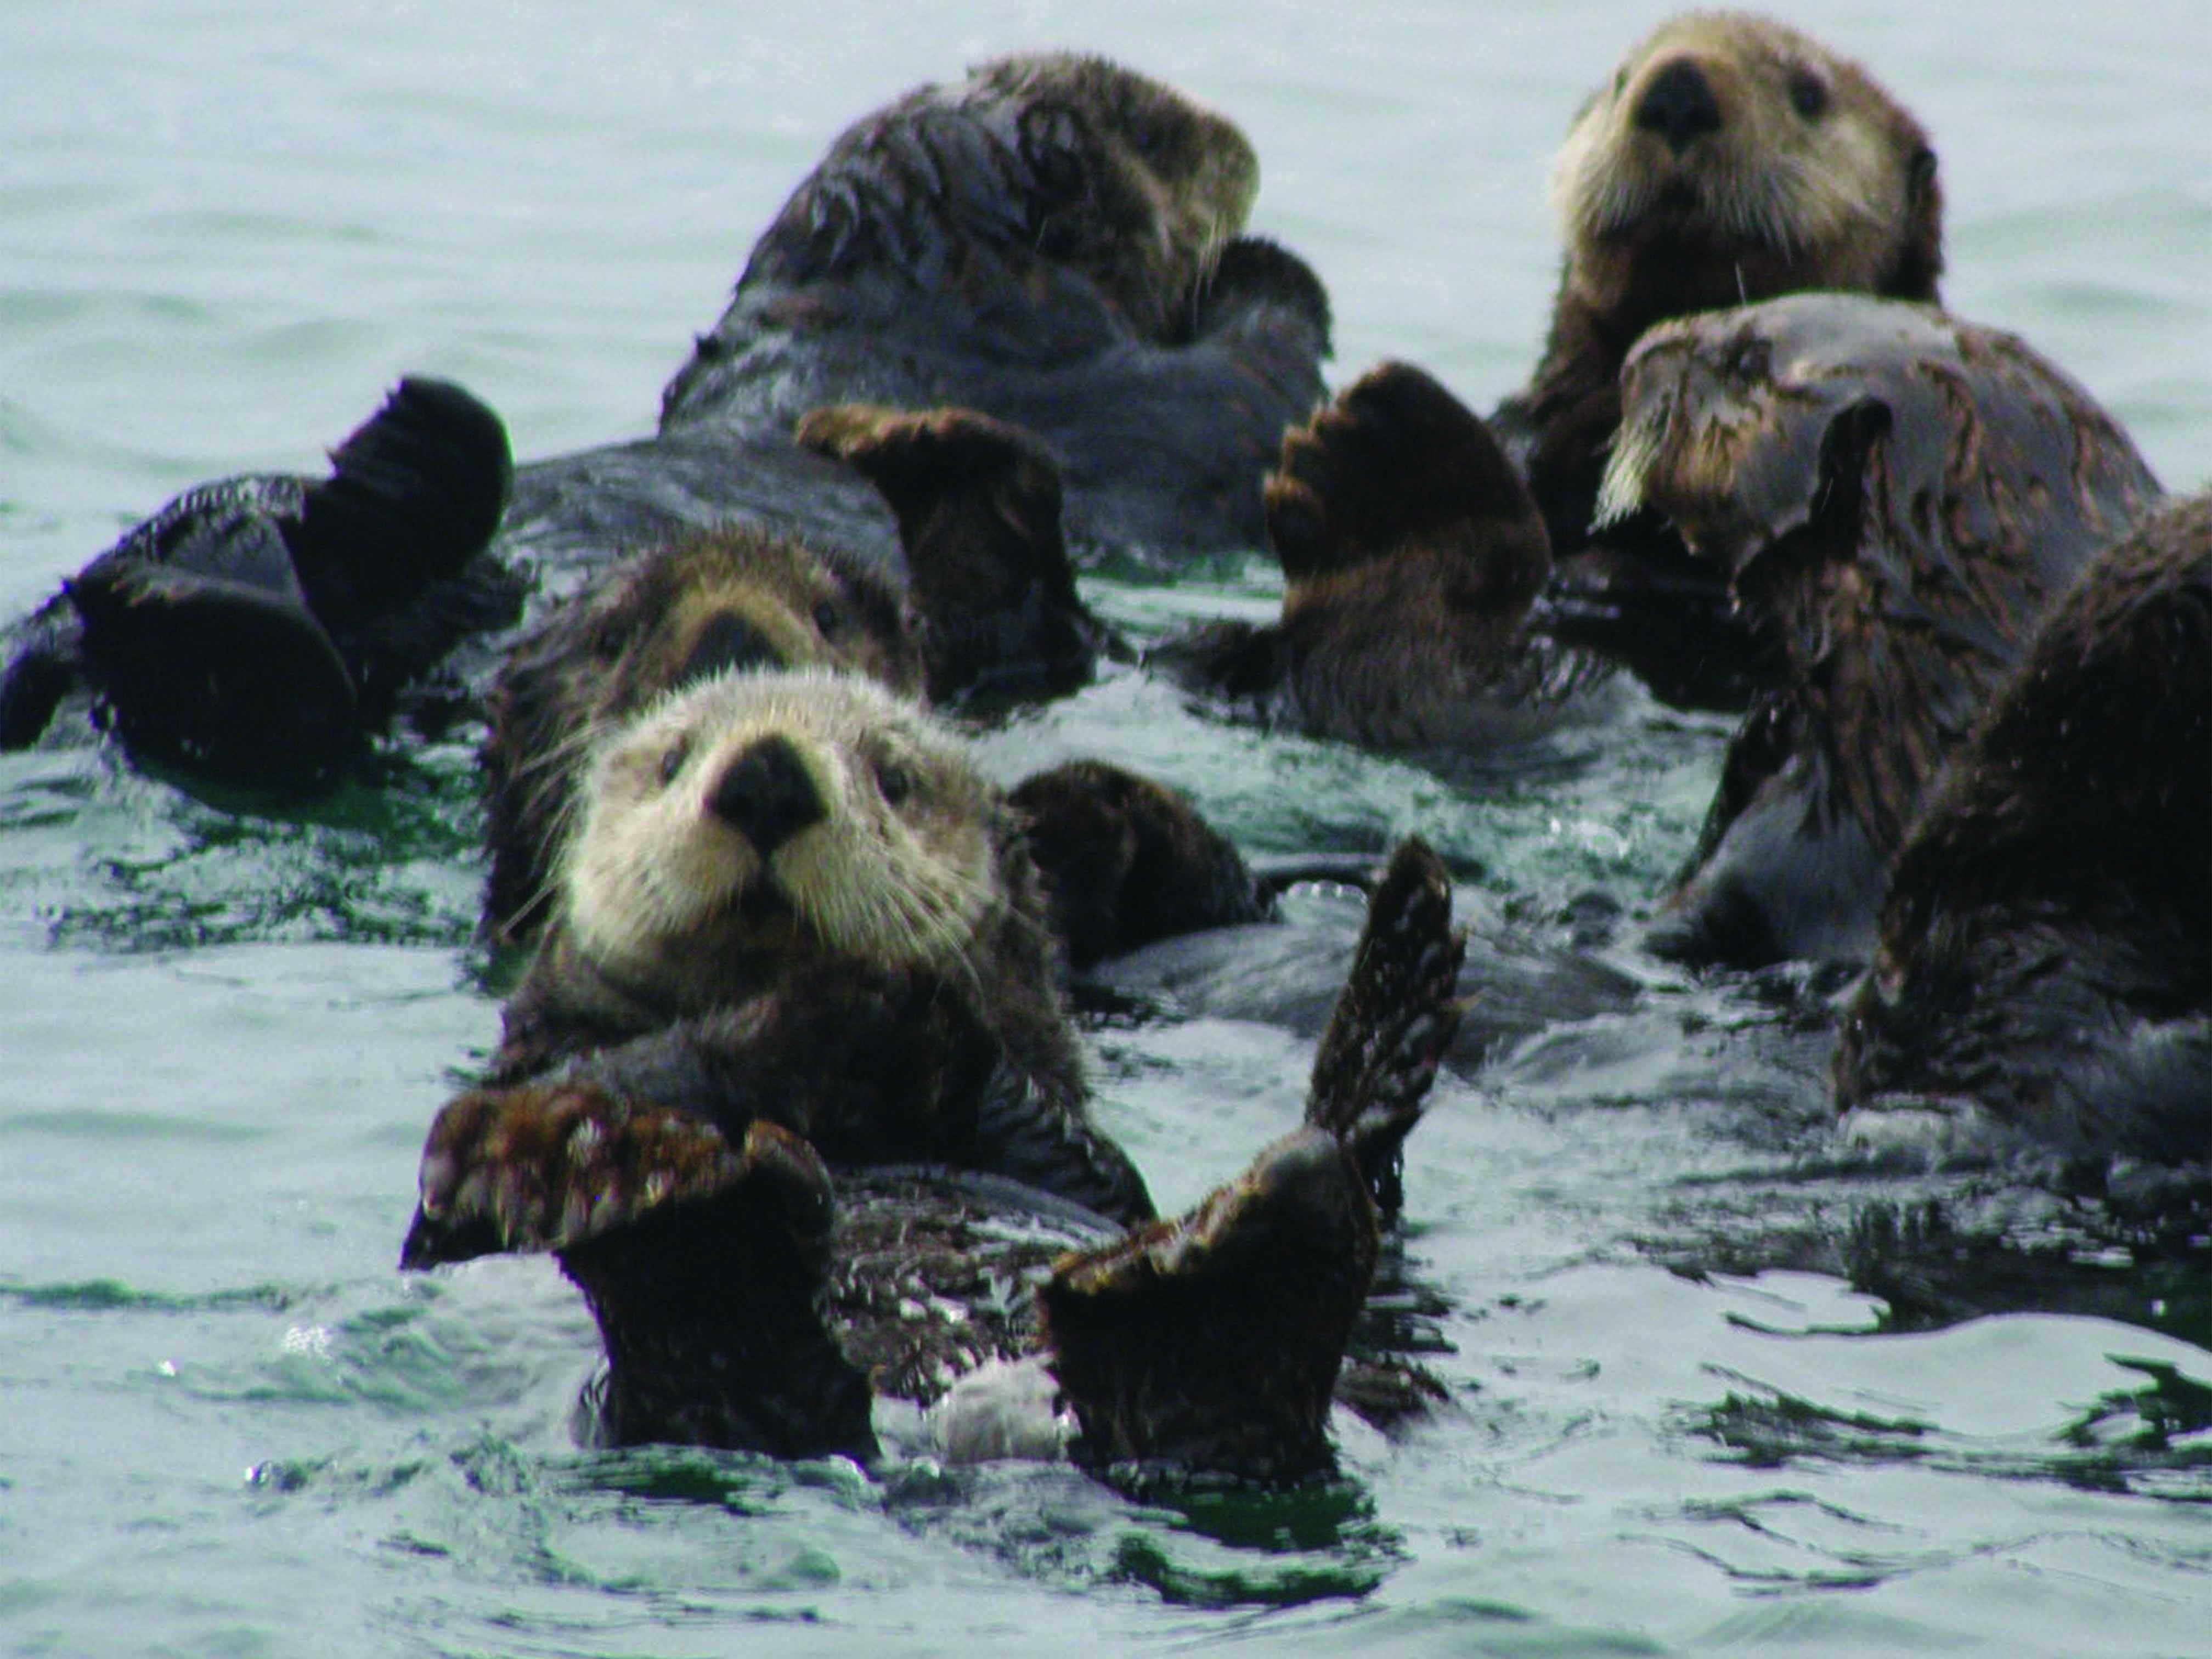 A northern sea otter floats peacefully in mirror calm water